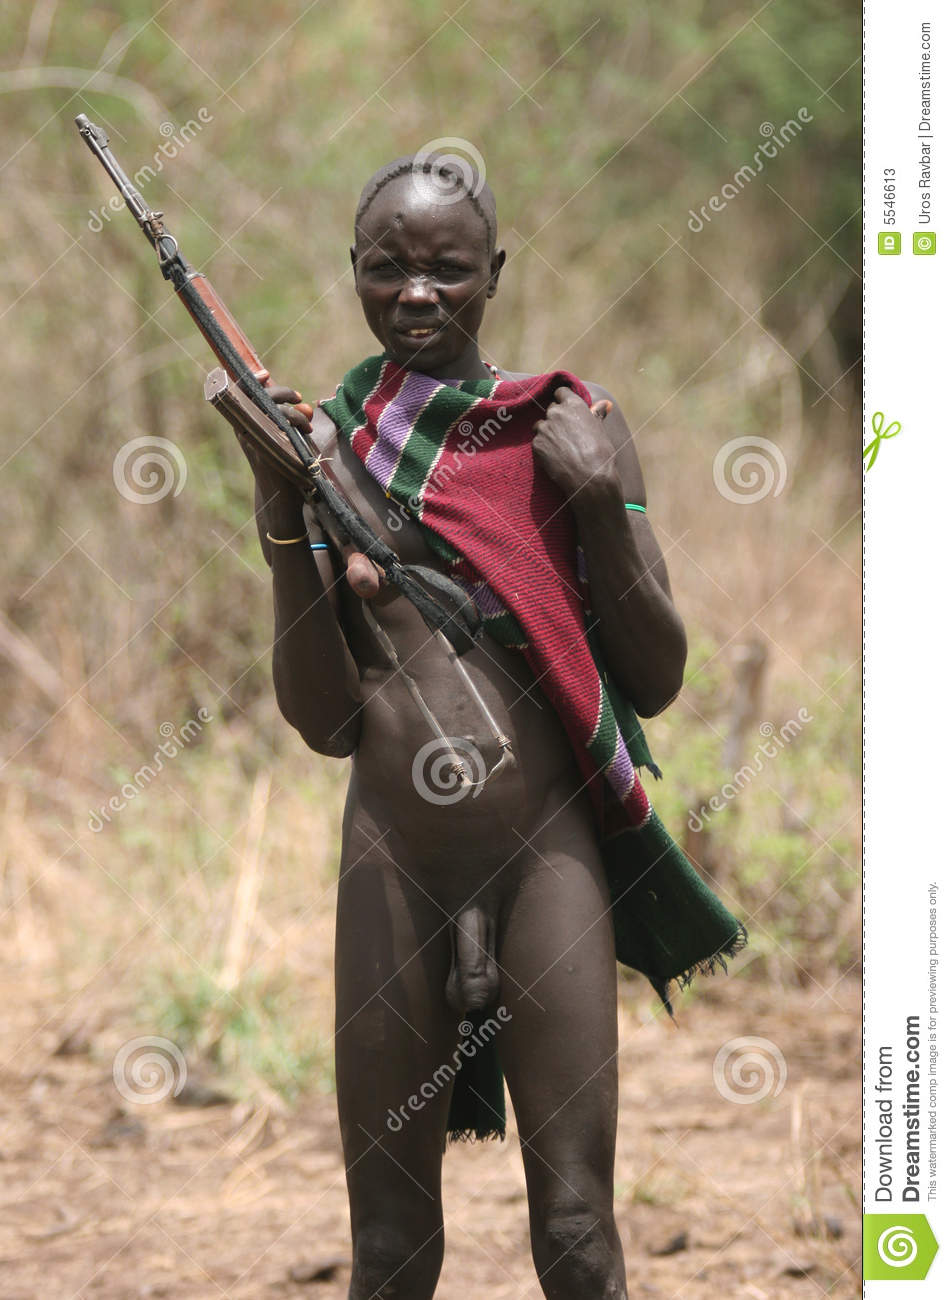 Nude African People 69